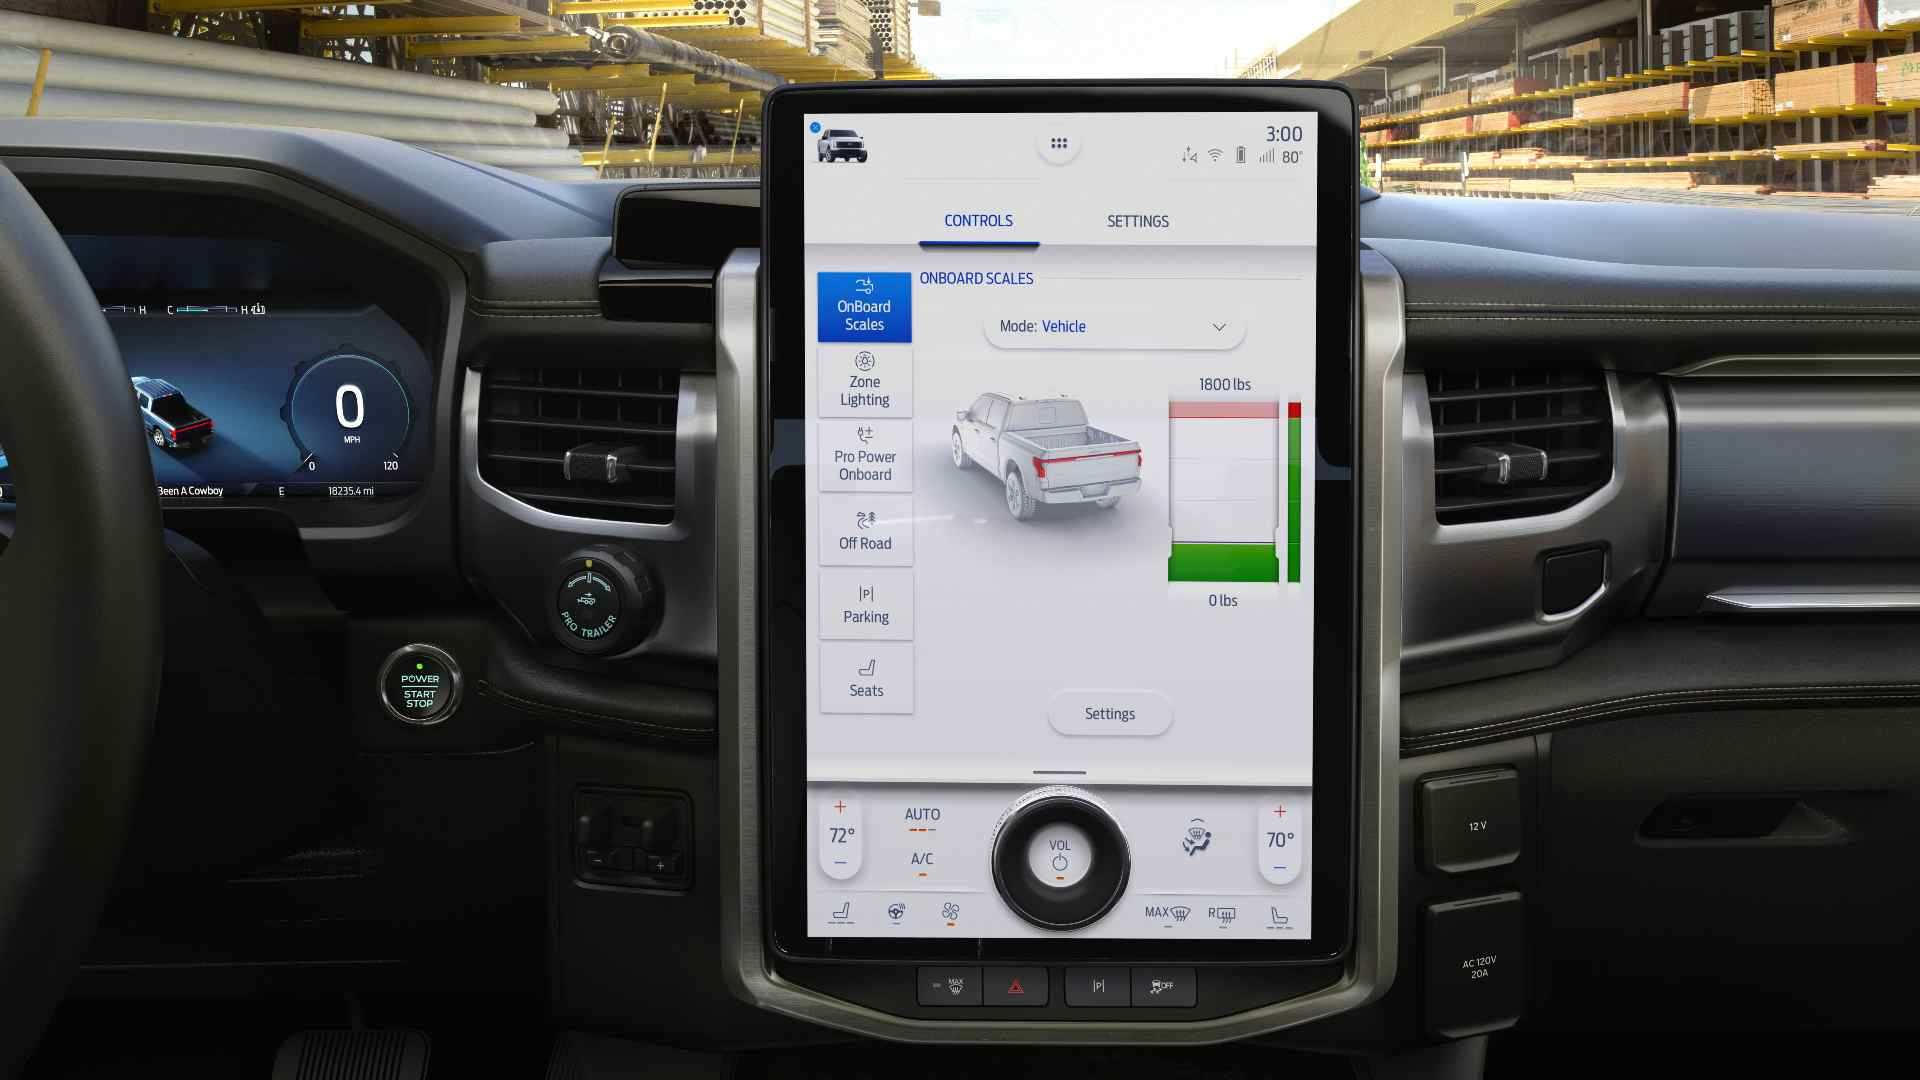 The Ford F-150 Lightning gets a tablet-style 15.5-inch touchscreen infotainment system. Image: Ford